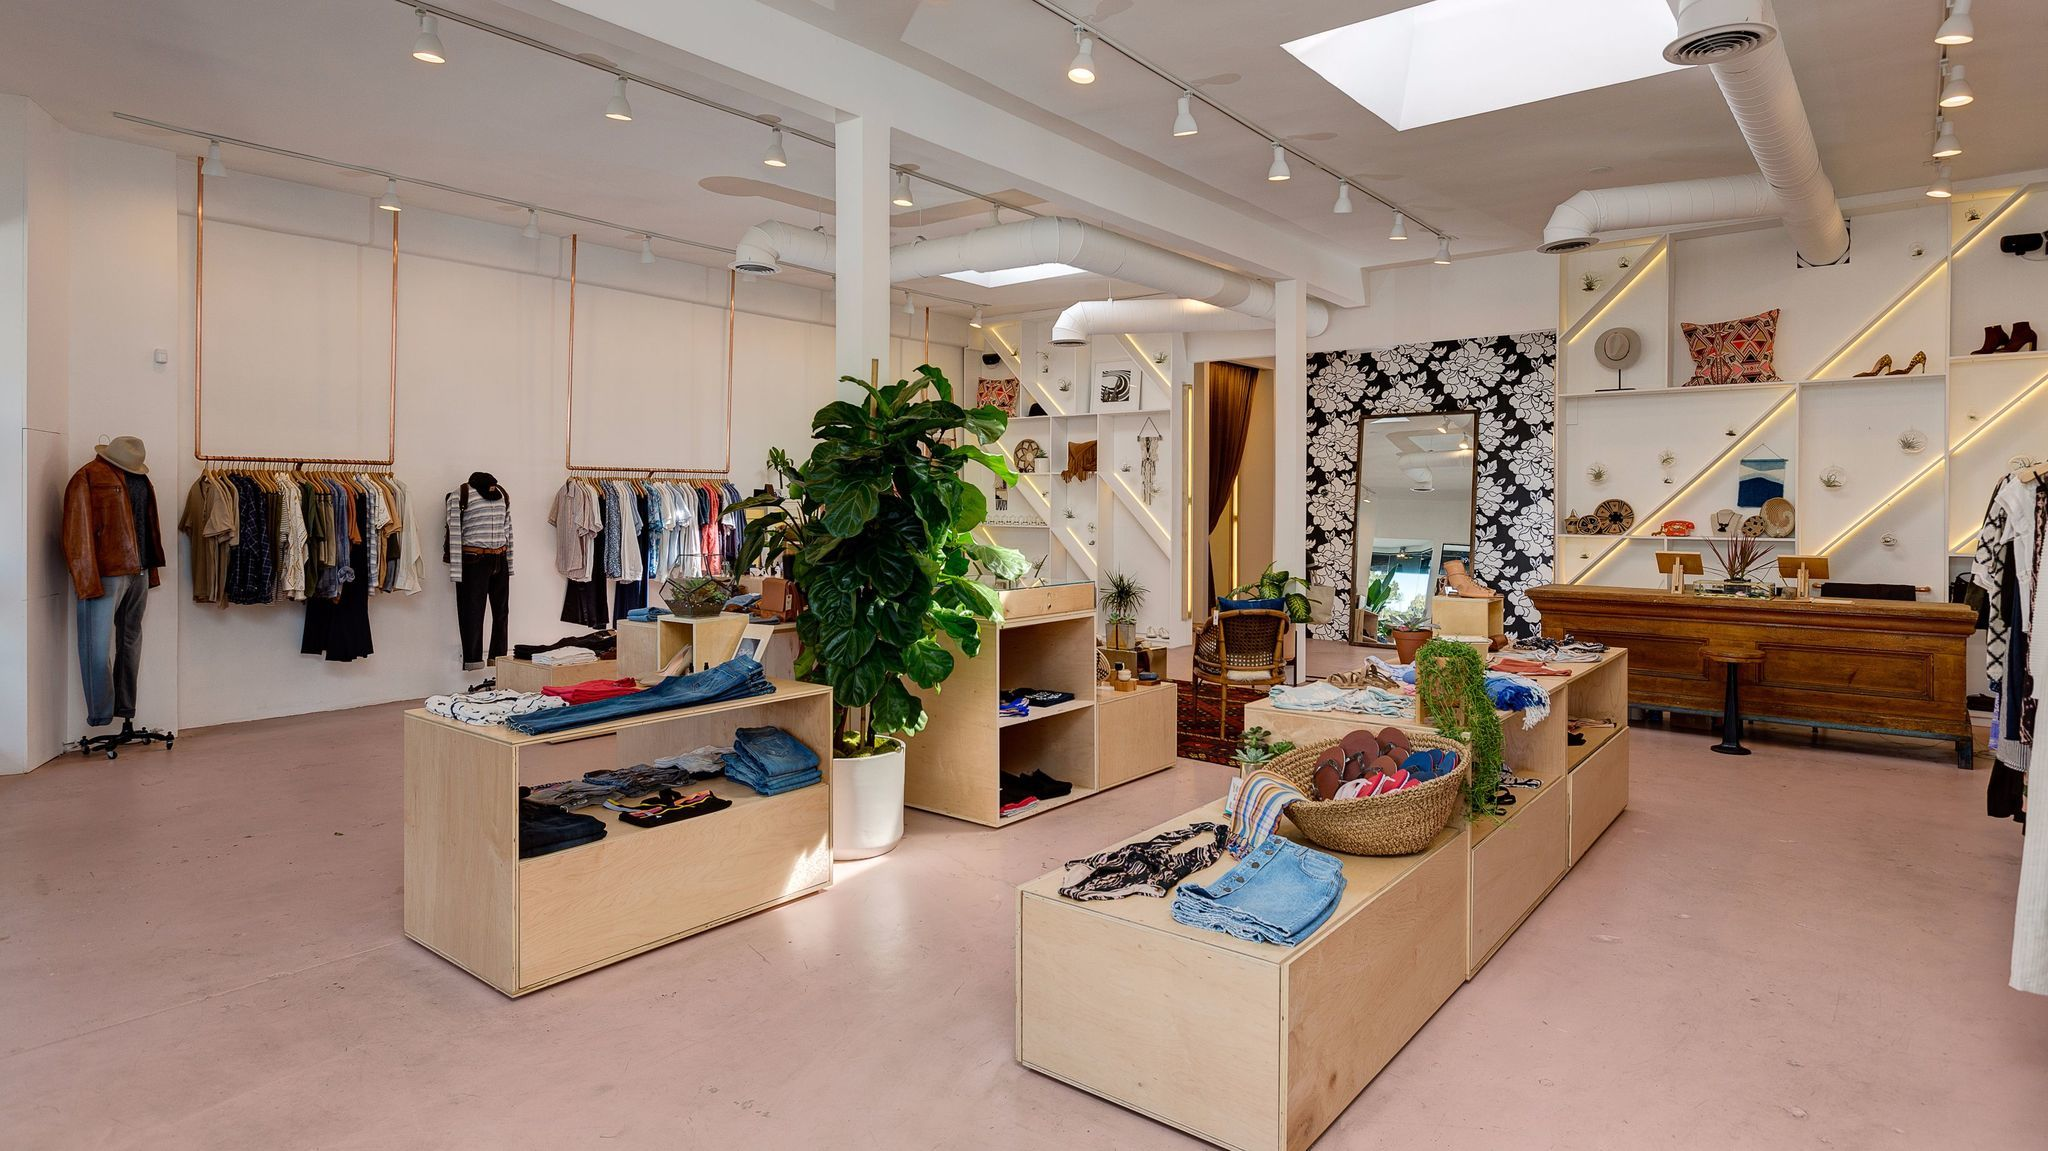 What used to be Bucks & Does in Silver Lake was recently revamped and renamed. Now the Odells, the 2,000-square-foot, multi-brand store offers a curated selection of clothing and accessories, including the Odells brand created by husband-and-wife founders Laura and Jason O'Dell.